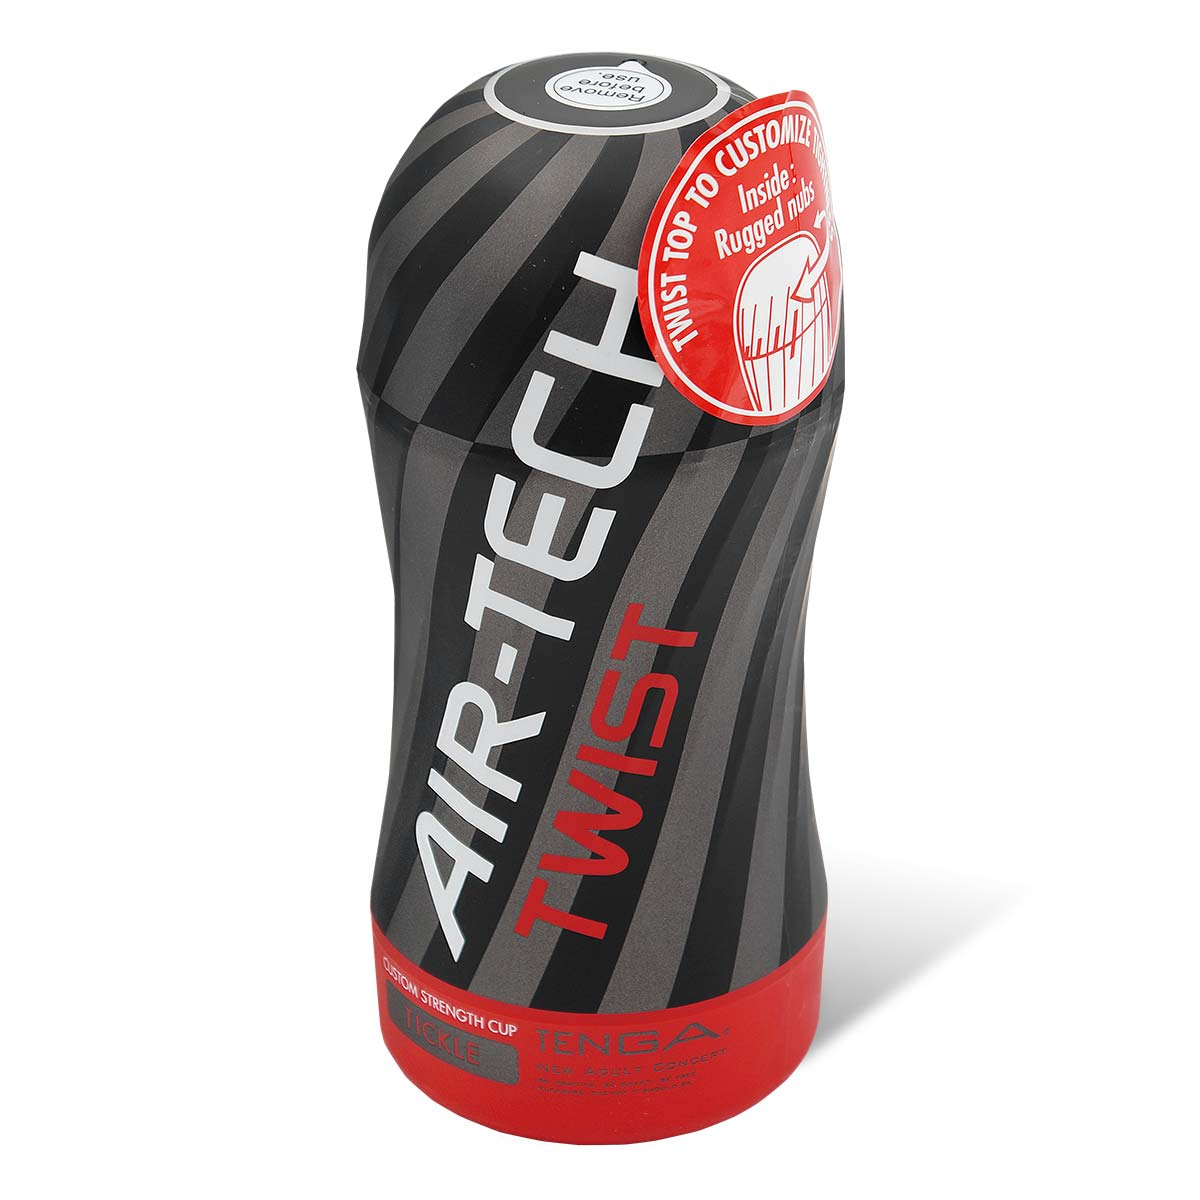 TENGA AIR-TECH TWIST CUSTOM STRENGTH CUP TICKLE